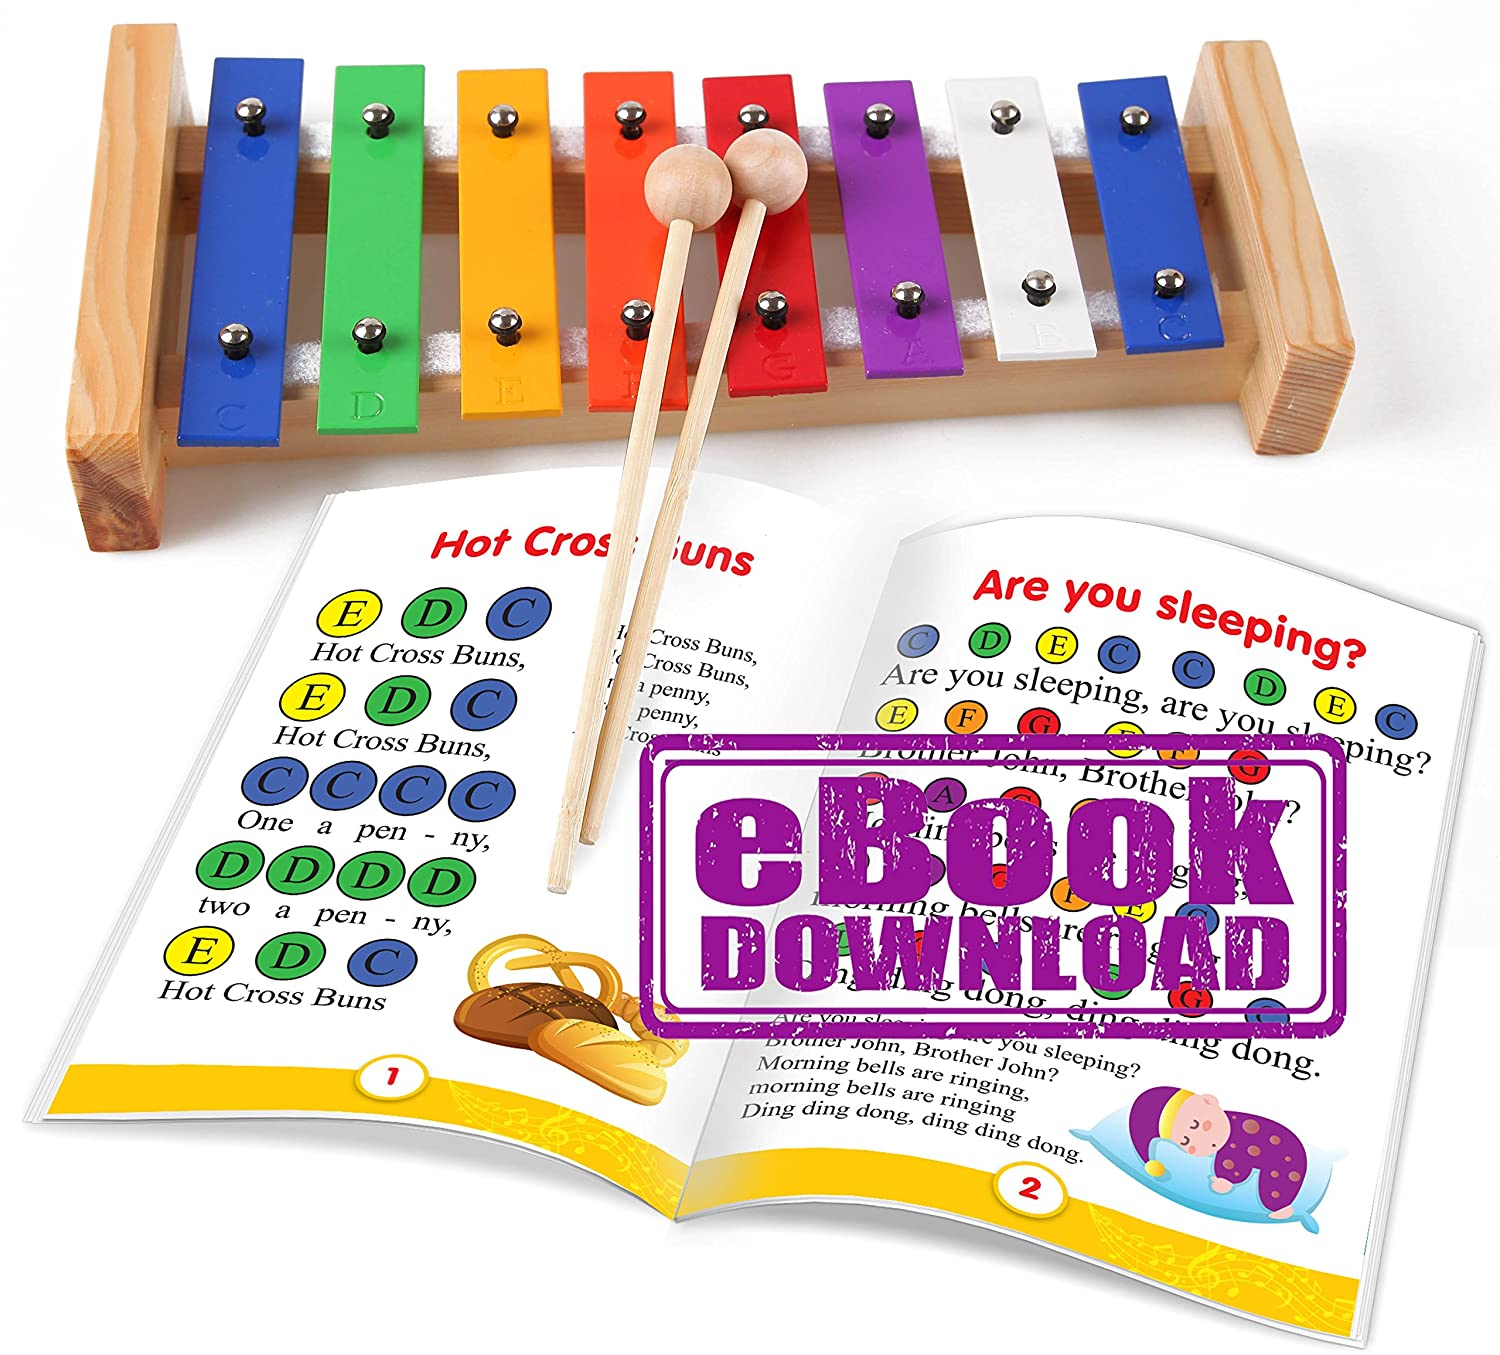 Mini Xylophone for Children - Color Musical Instrument - e-Book Color-Coded Children Songs just for this Xylophone inTemenos